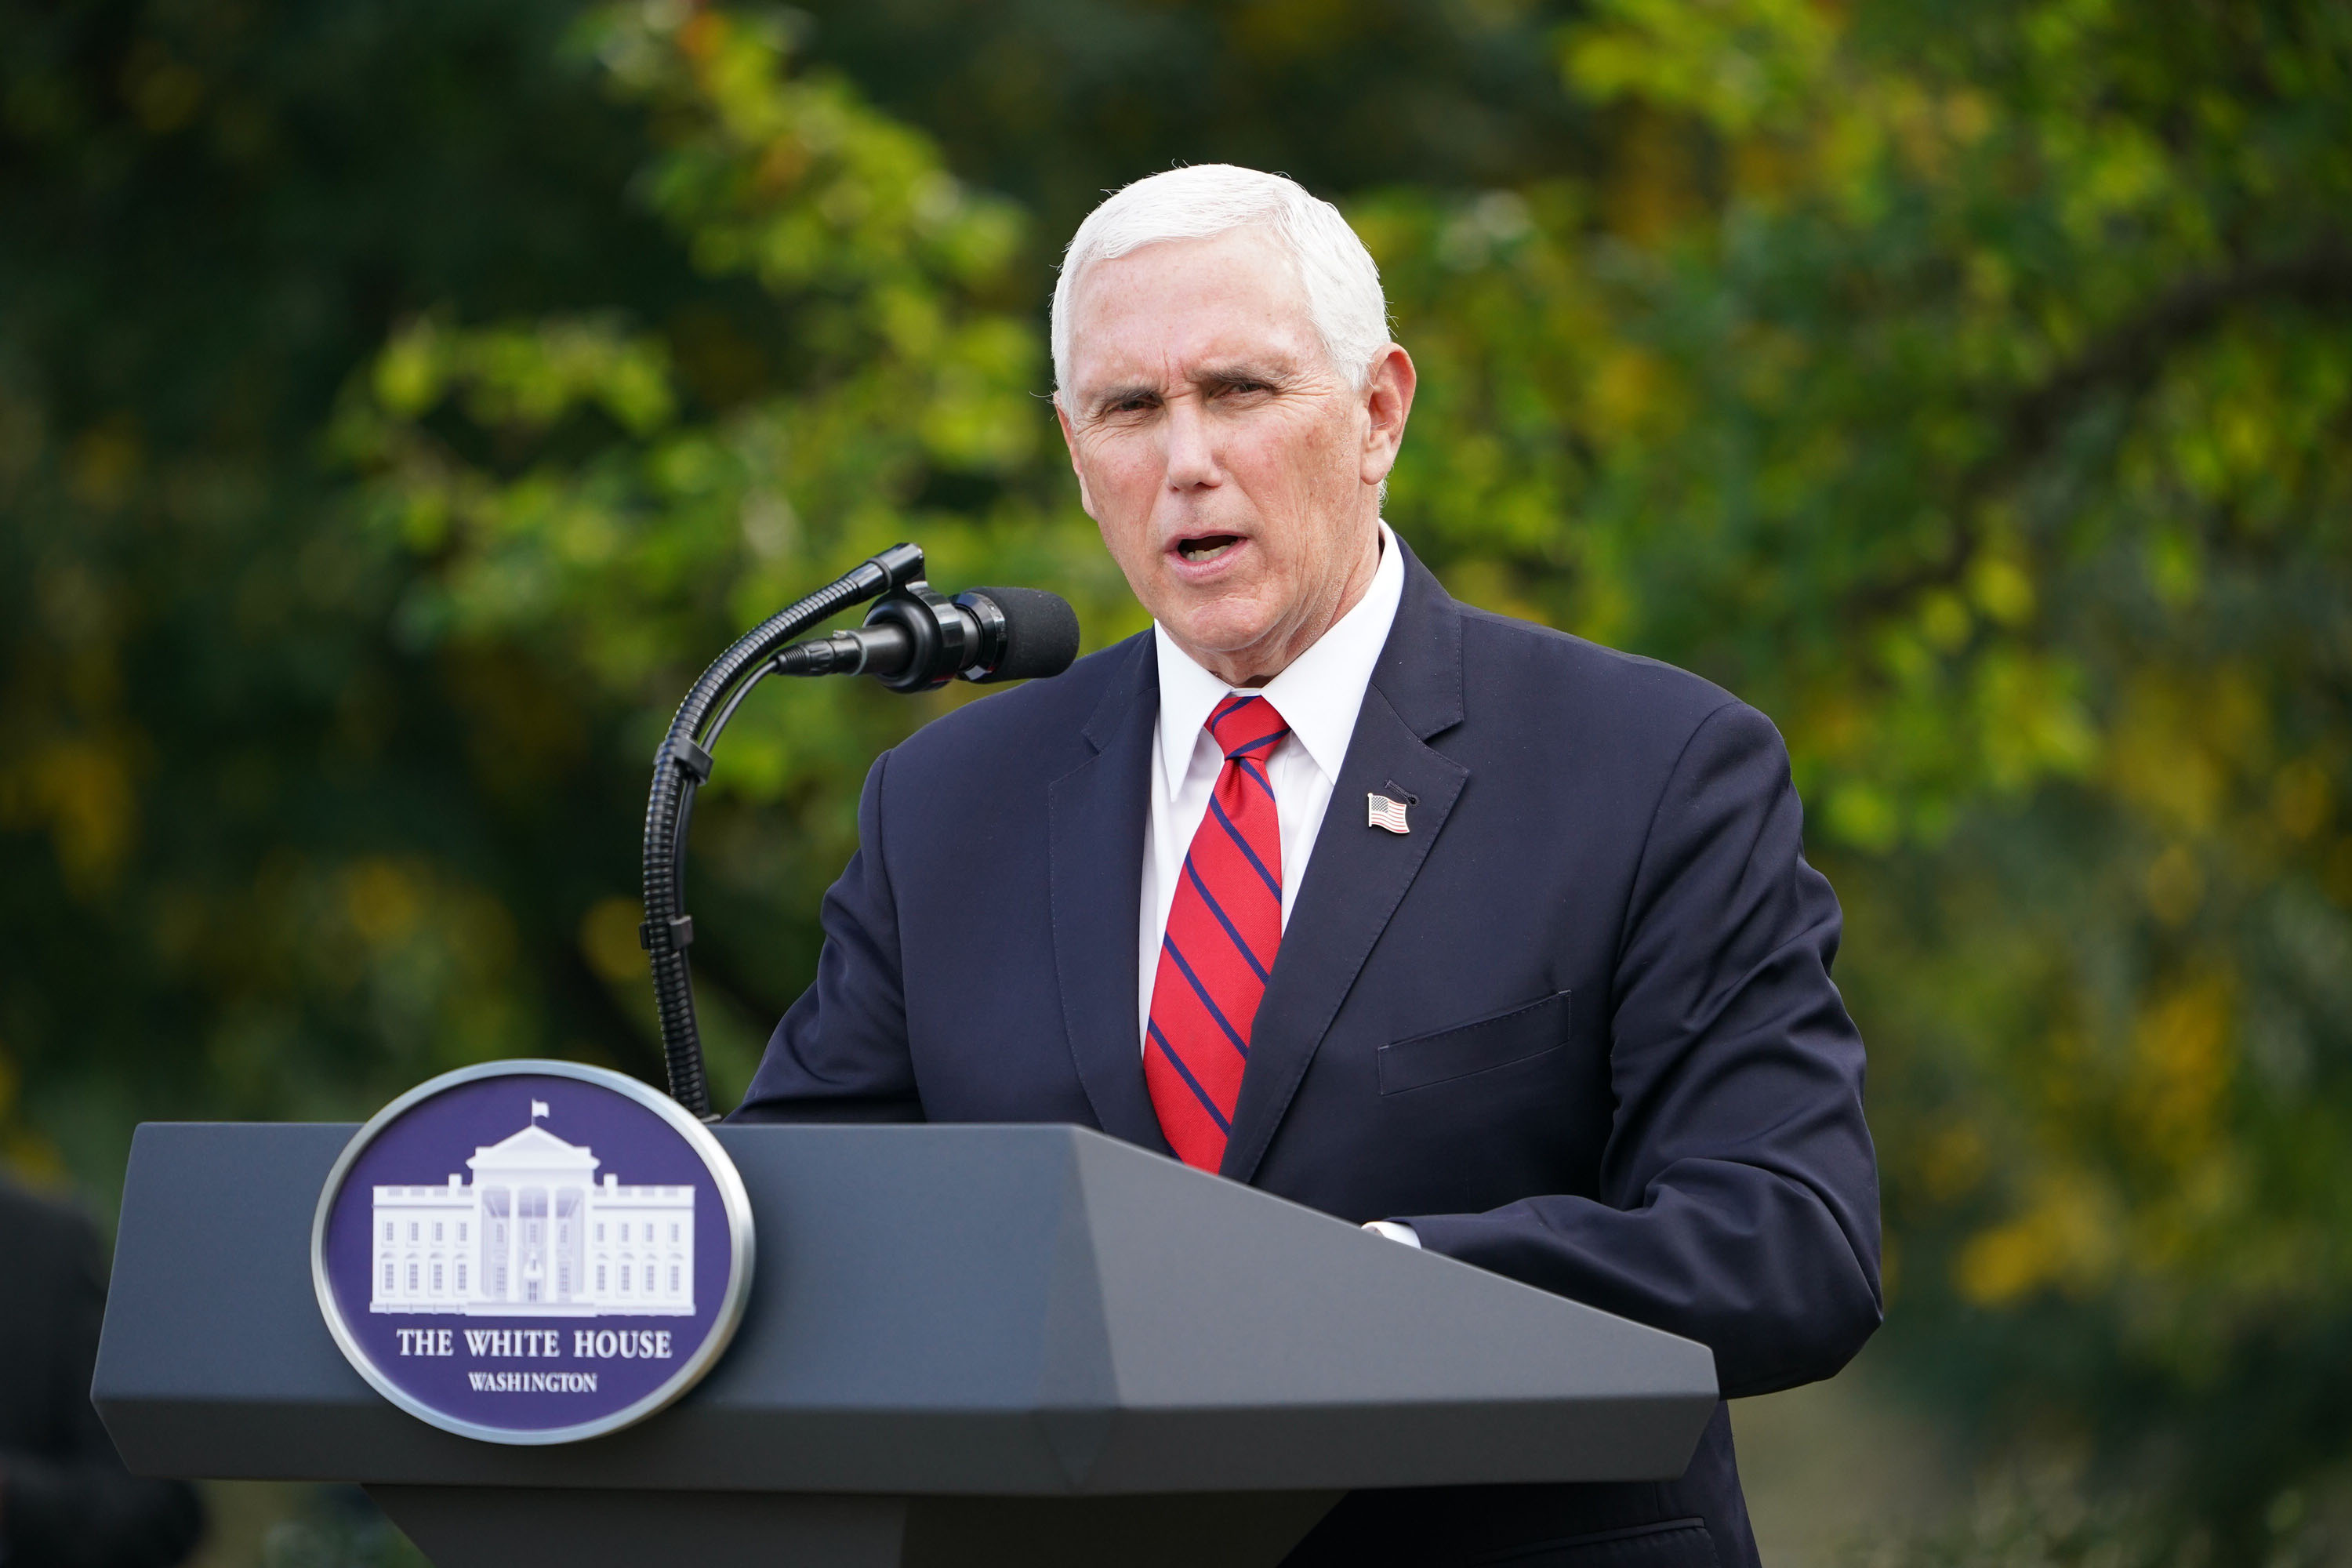 US Vice President Mike Pence speaks on Covid-19 testing in the Rose Garden of the White House in Washington, DC on September 28.